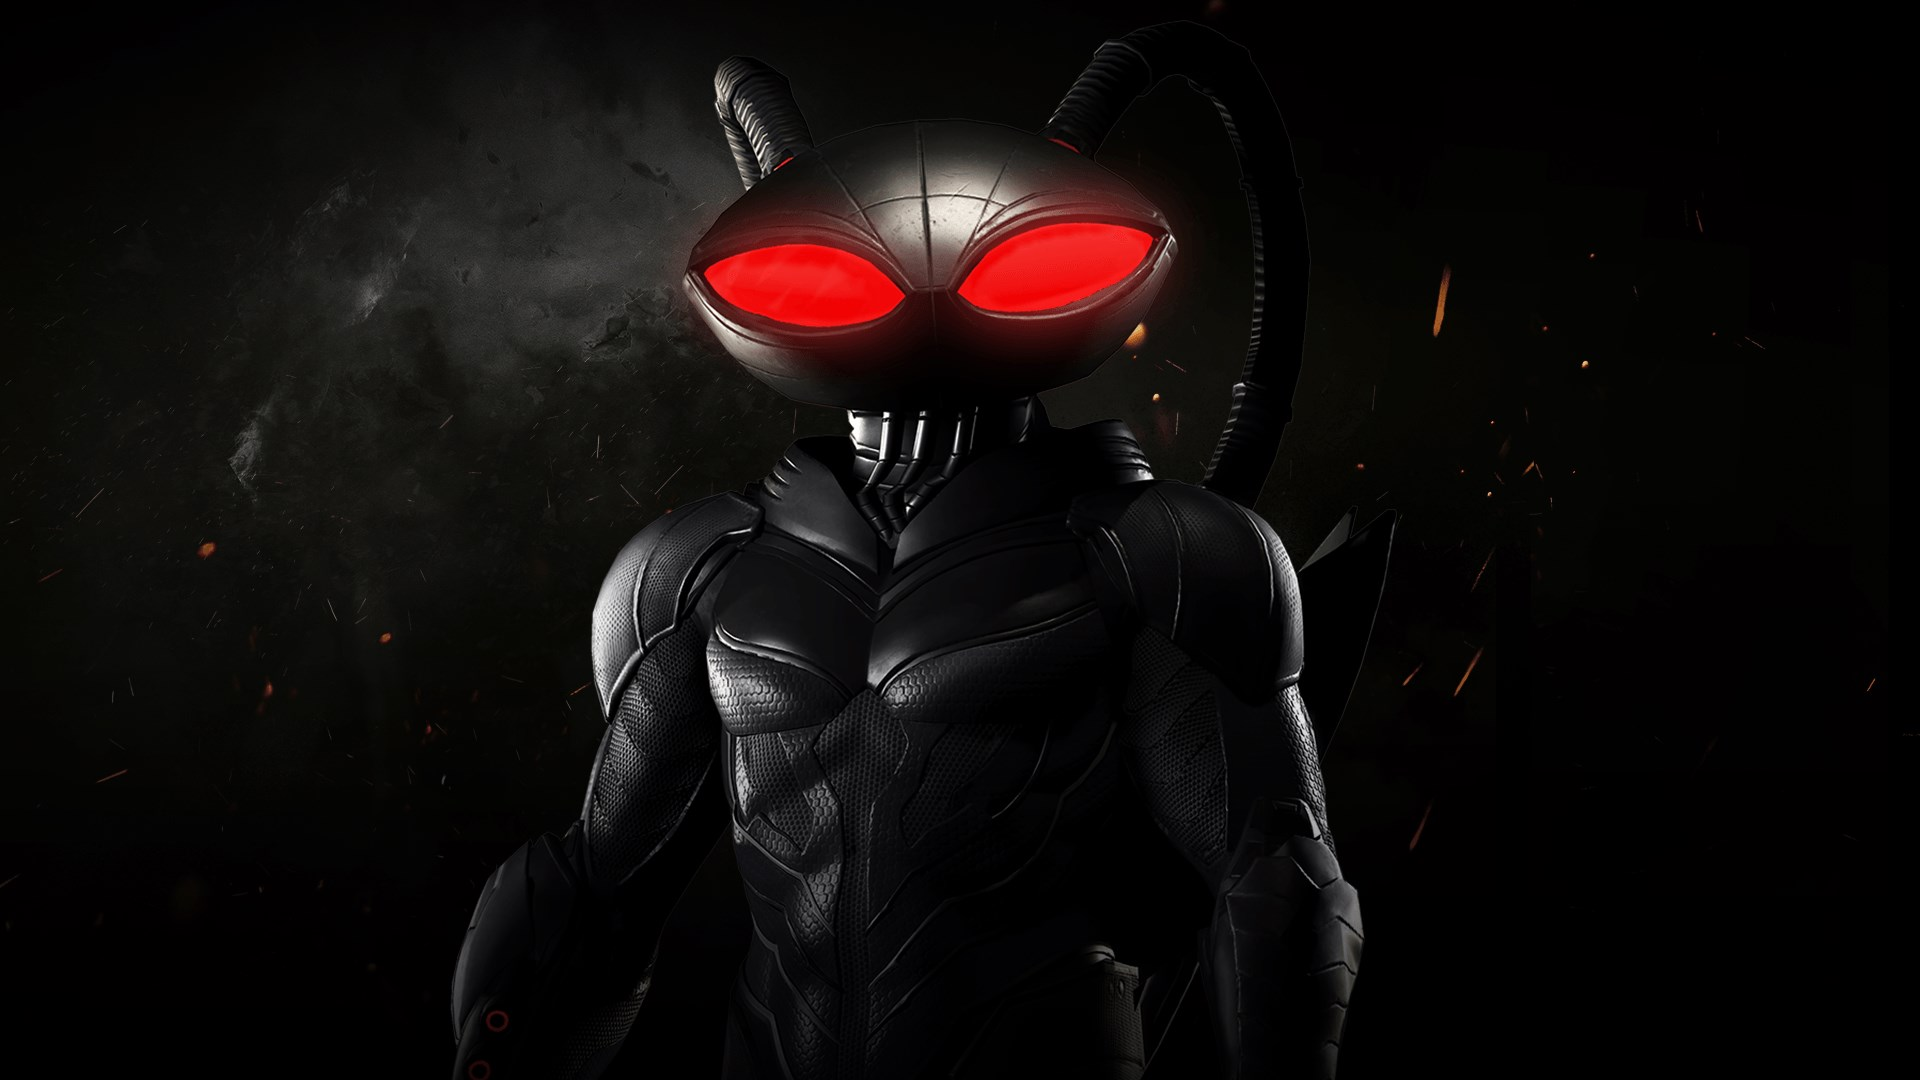 Injustice™ 2 - Black Manta